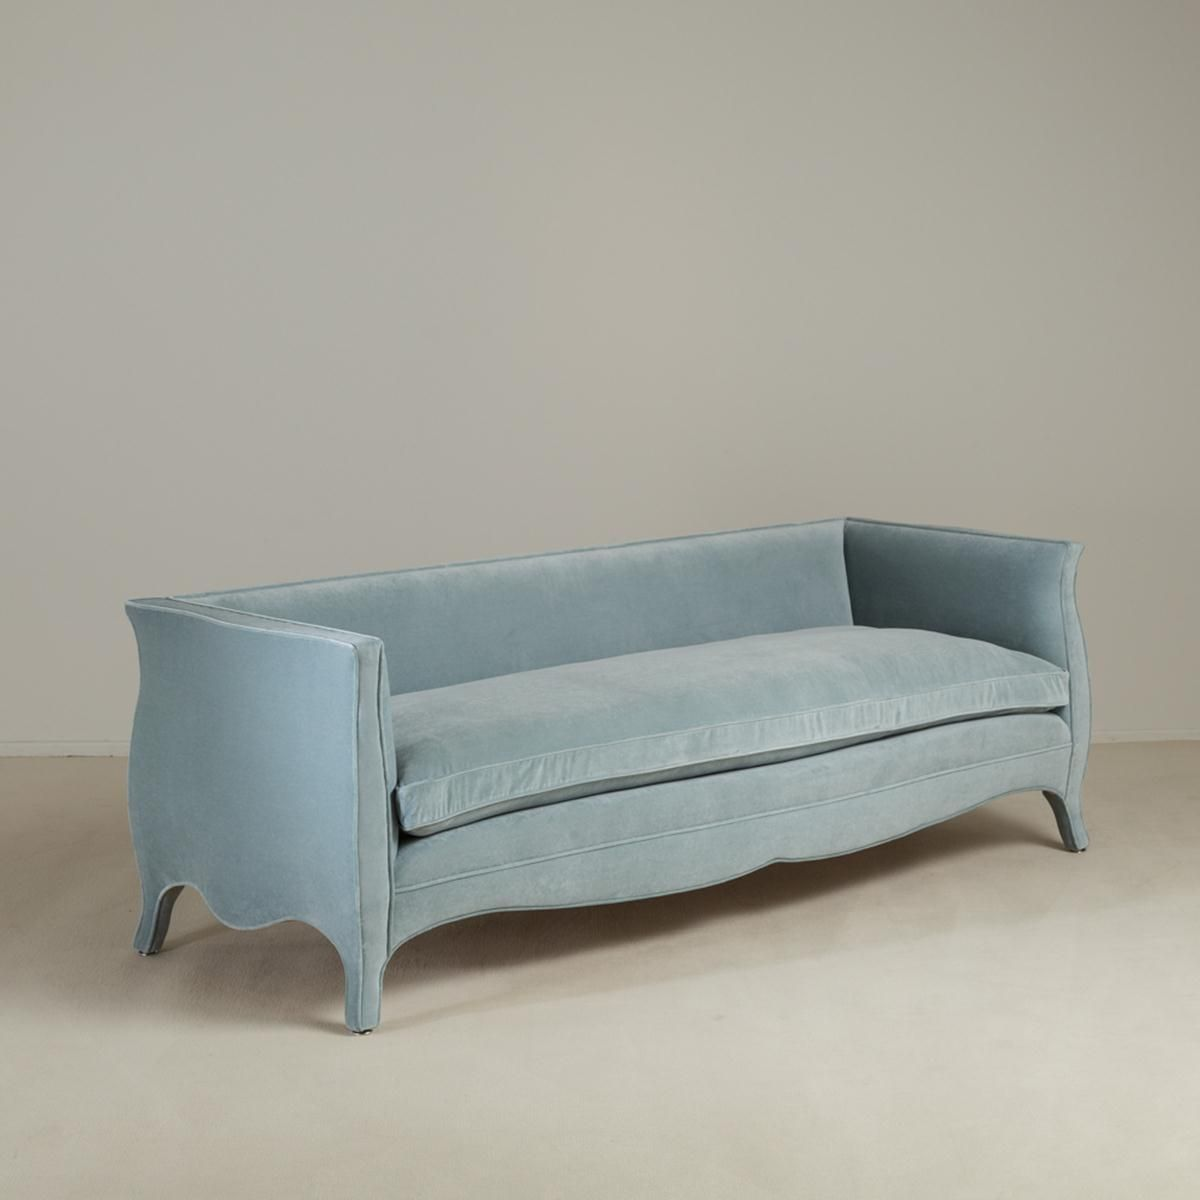 The High Backed French Style Sofa By Talisman Bespoke | Talisman